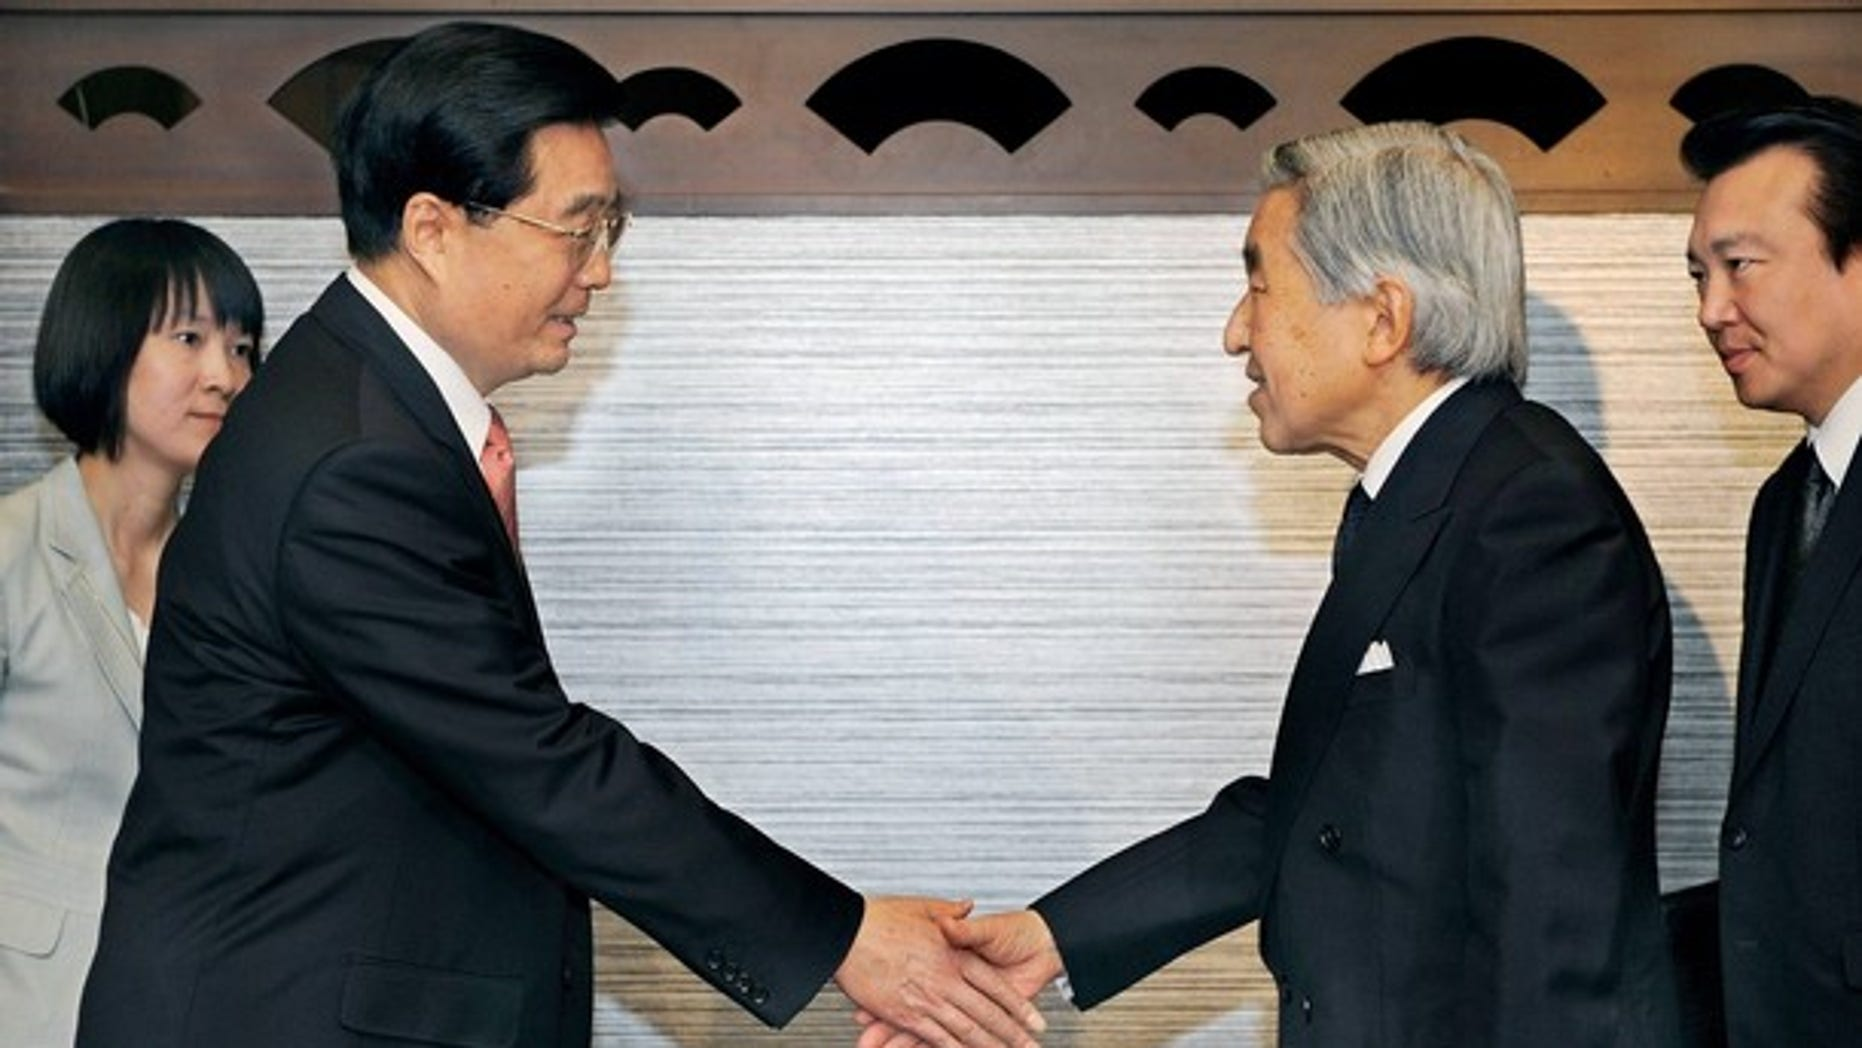 May 9, 2008: Chinese President Hu Jintao shakes hands with Japanese Emperor Akihito at a farewell call at a hotel in Tokyo (Reuters).